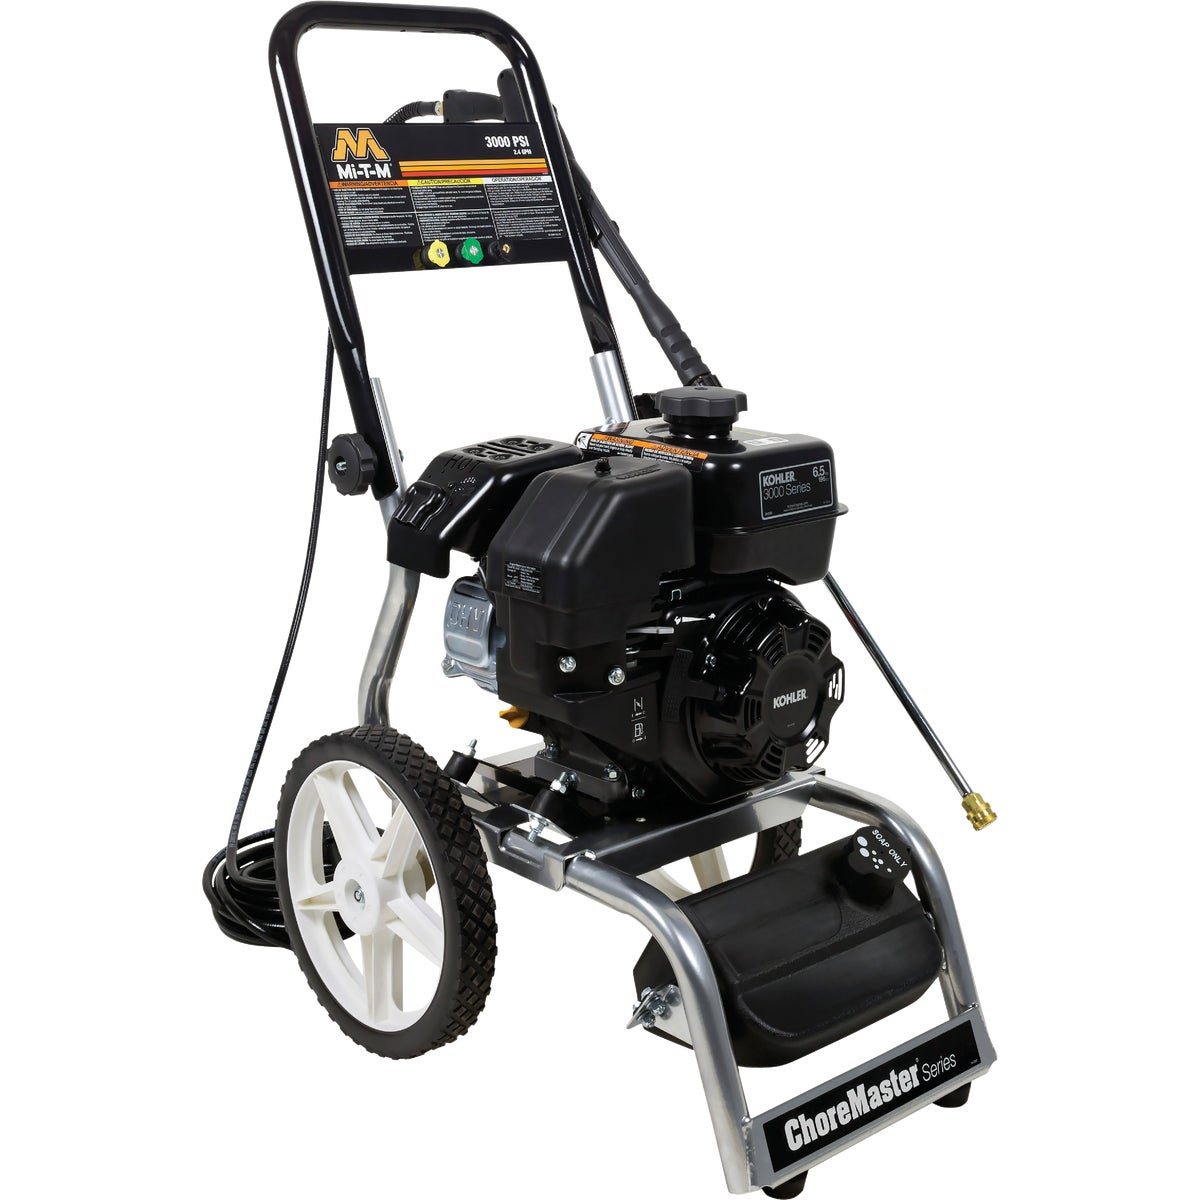 3000PSI PRESSURE WASHER - CV-3000-0MSC by Mi T M Corp